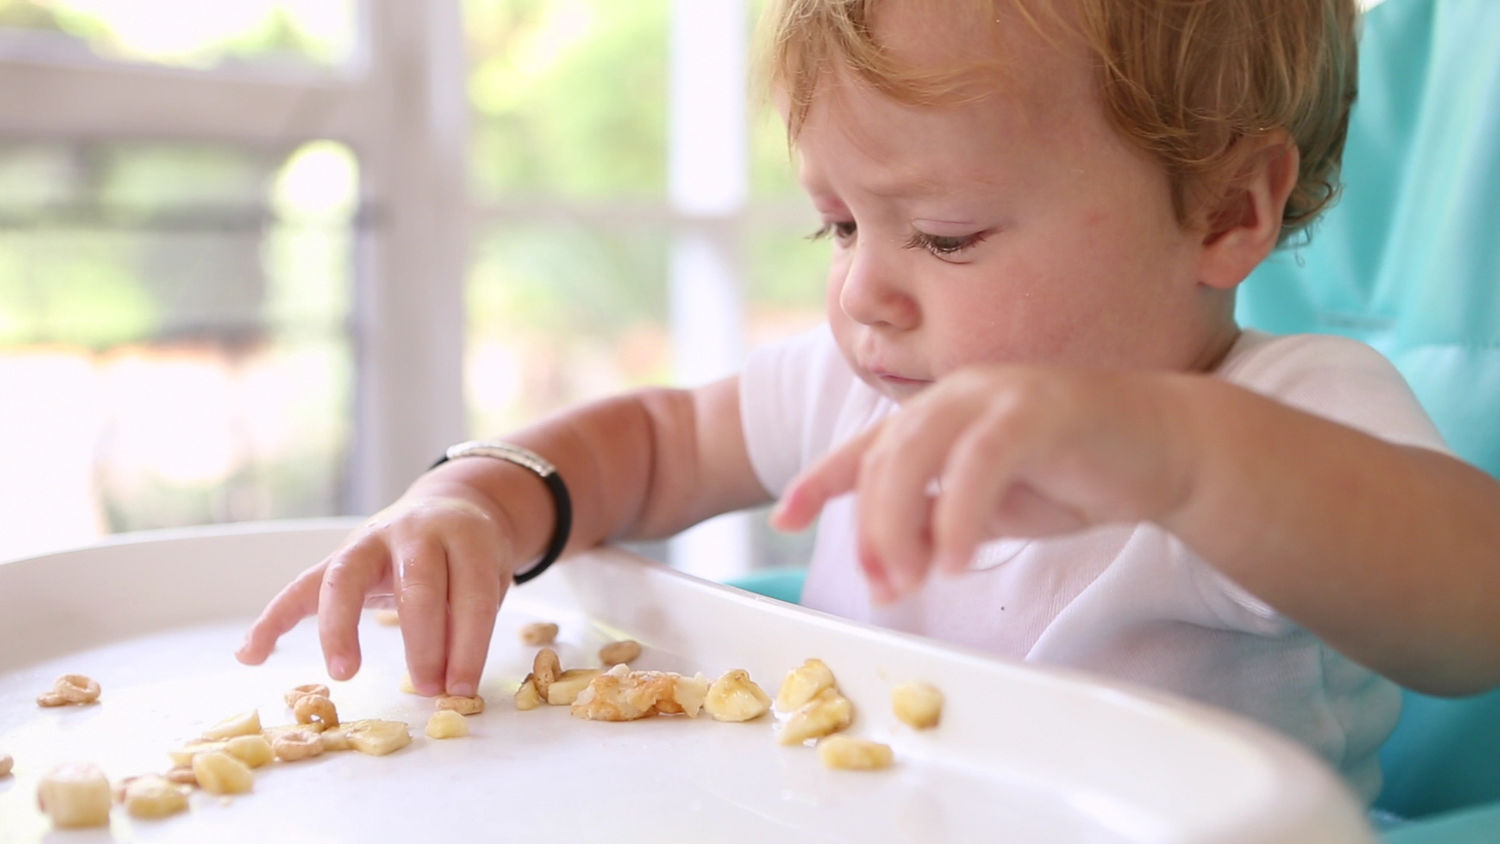 Baby-Led Weaning Do's and Don'ts